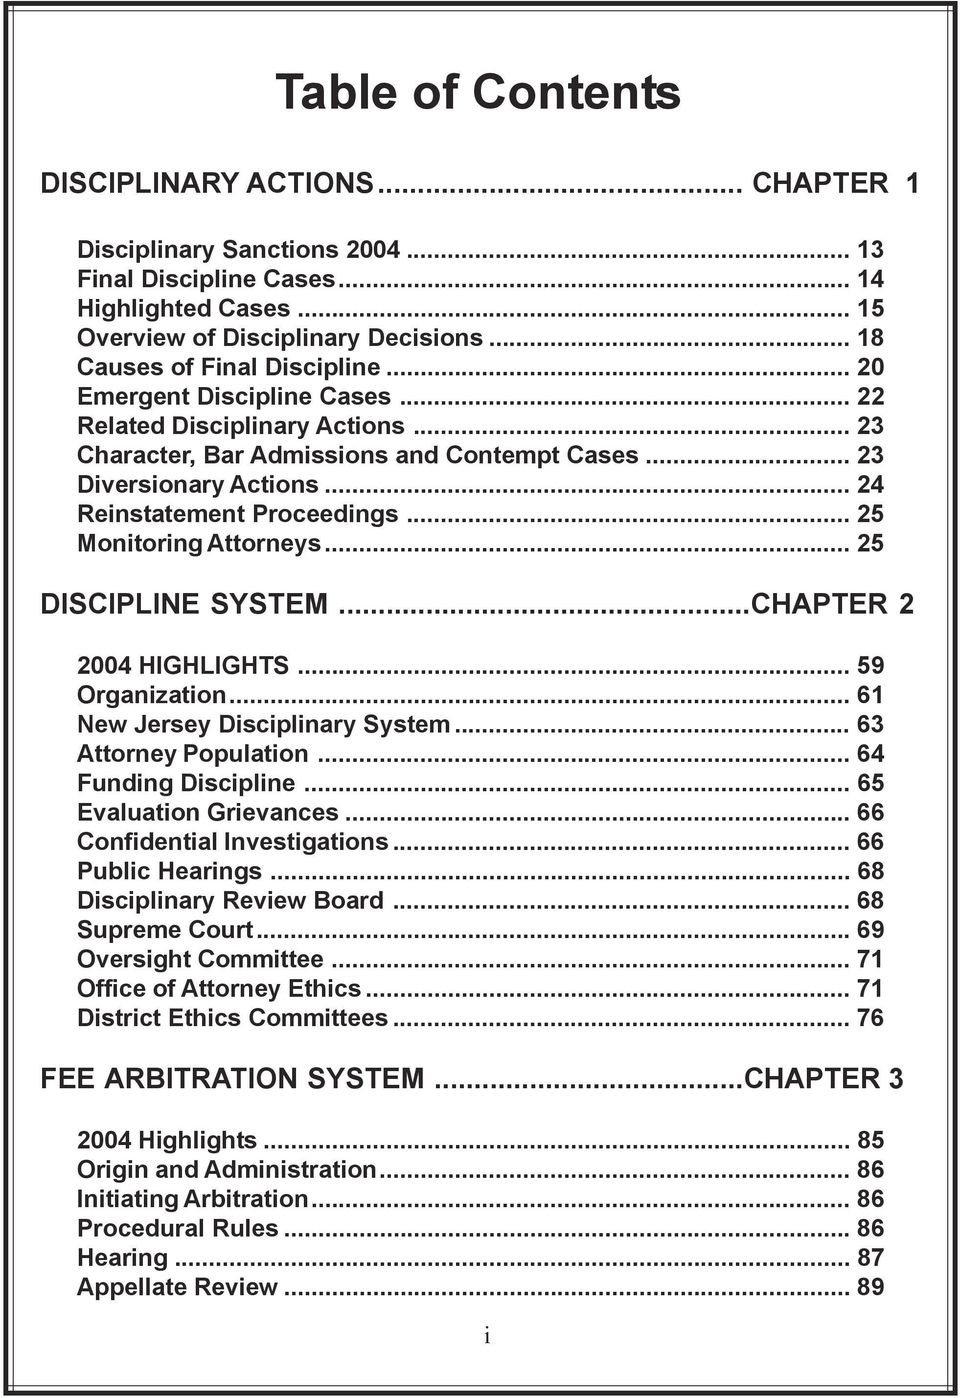 .. 24 Reinstatement Proceedings... 25 Monitoring Attorneys... 25 DISCIPLINE SYSTEM...CHAPTER 2 2004 HIGHLIGHTS... 59 Organization... 61 New Jersey Disciplinary System... 63 Attorney Population.